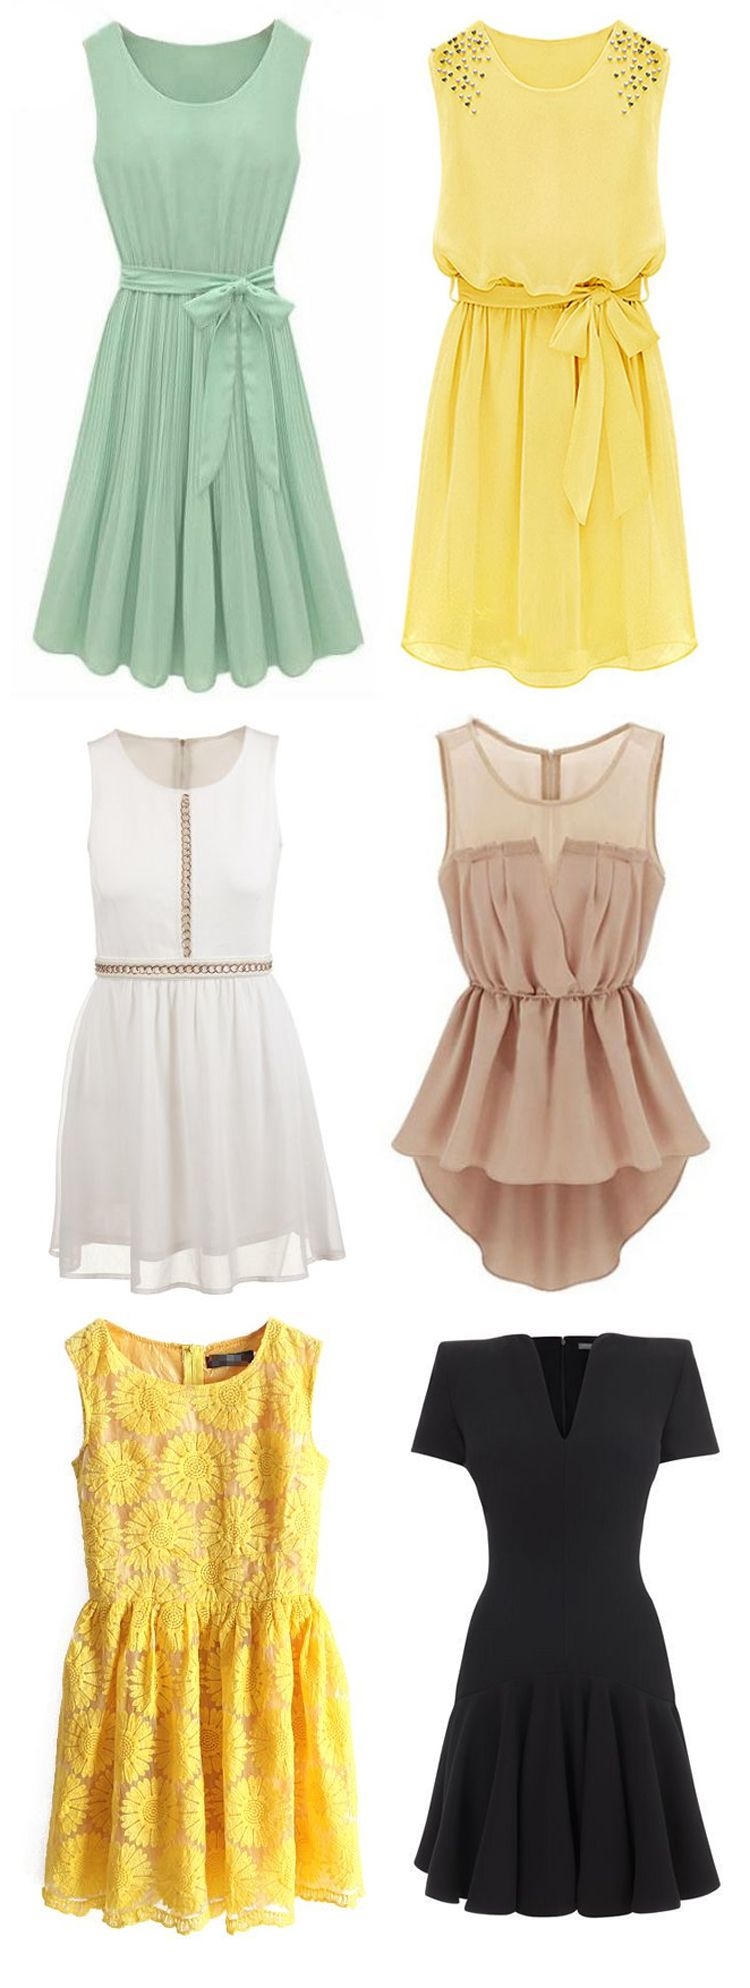 Adorable Dresses! Layer these up to make them perfect for Fall.